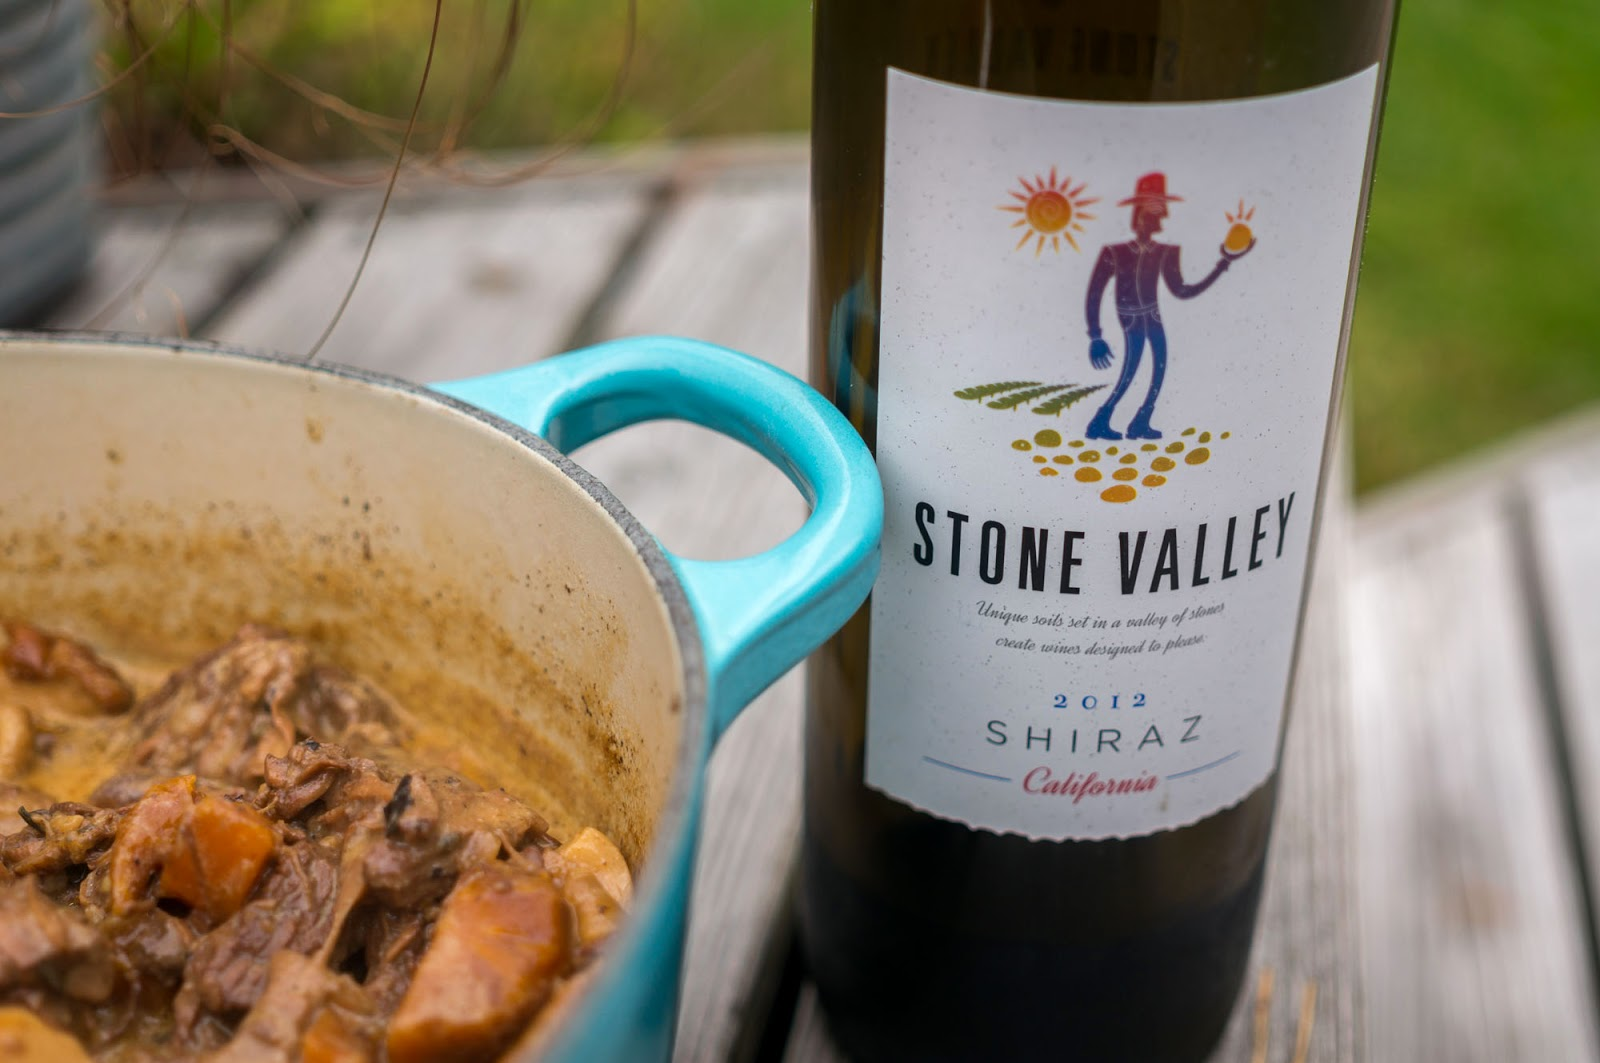 stone valley shiraz